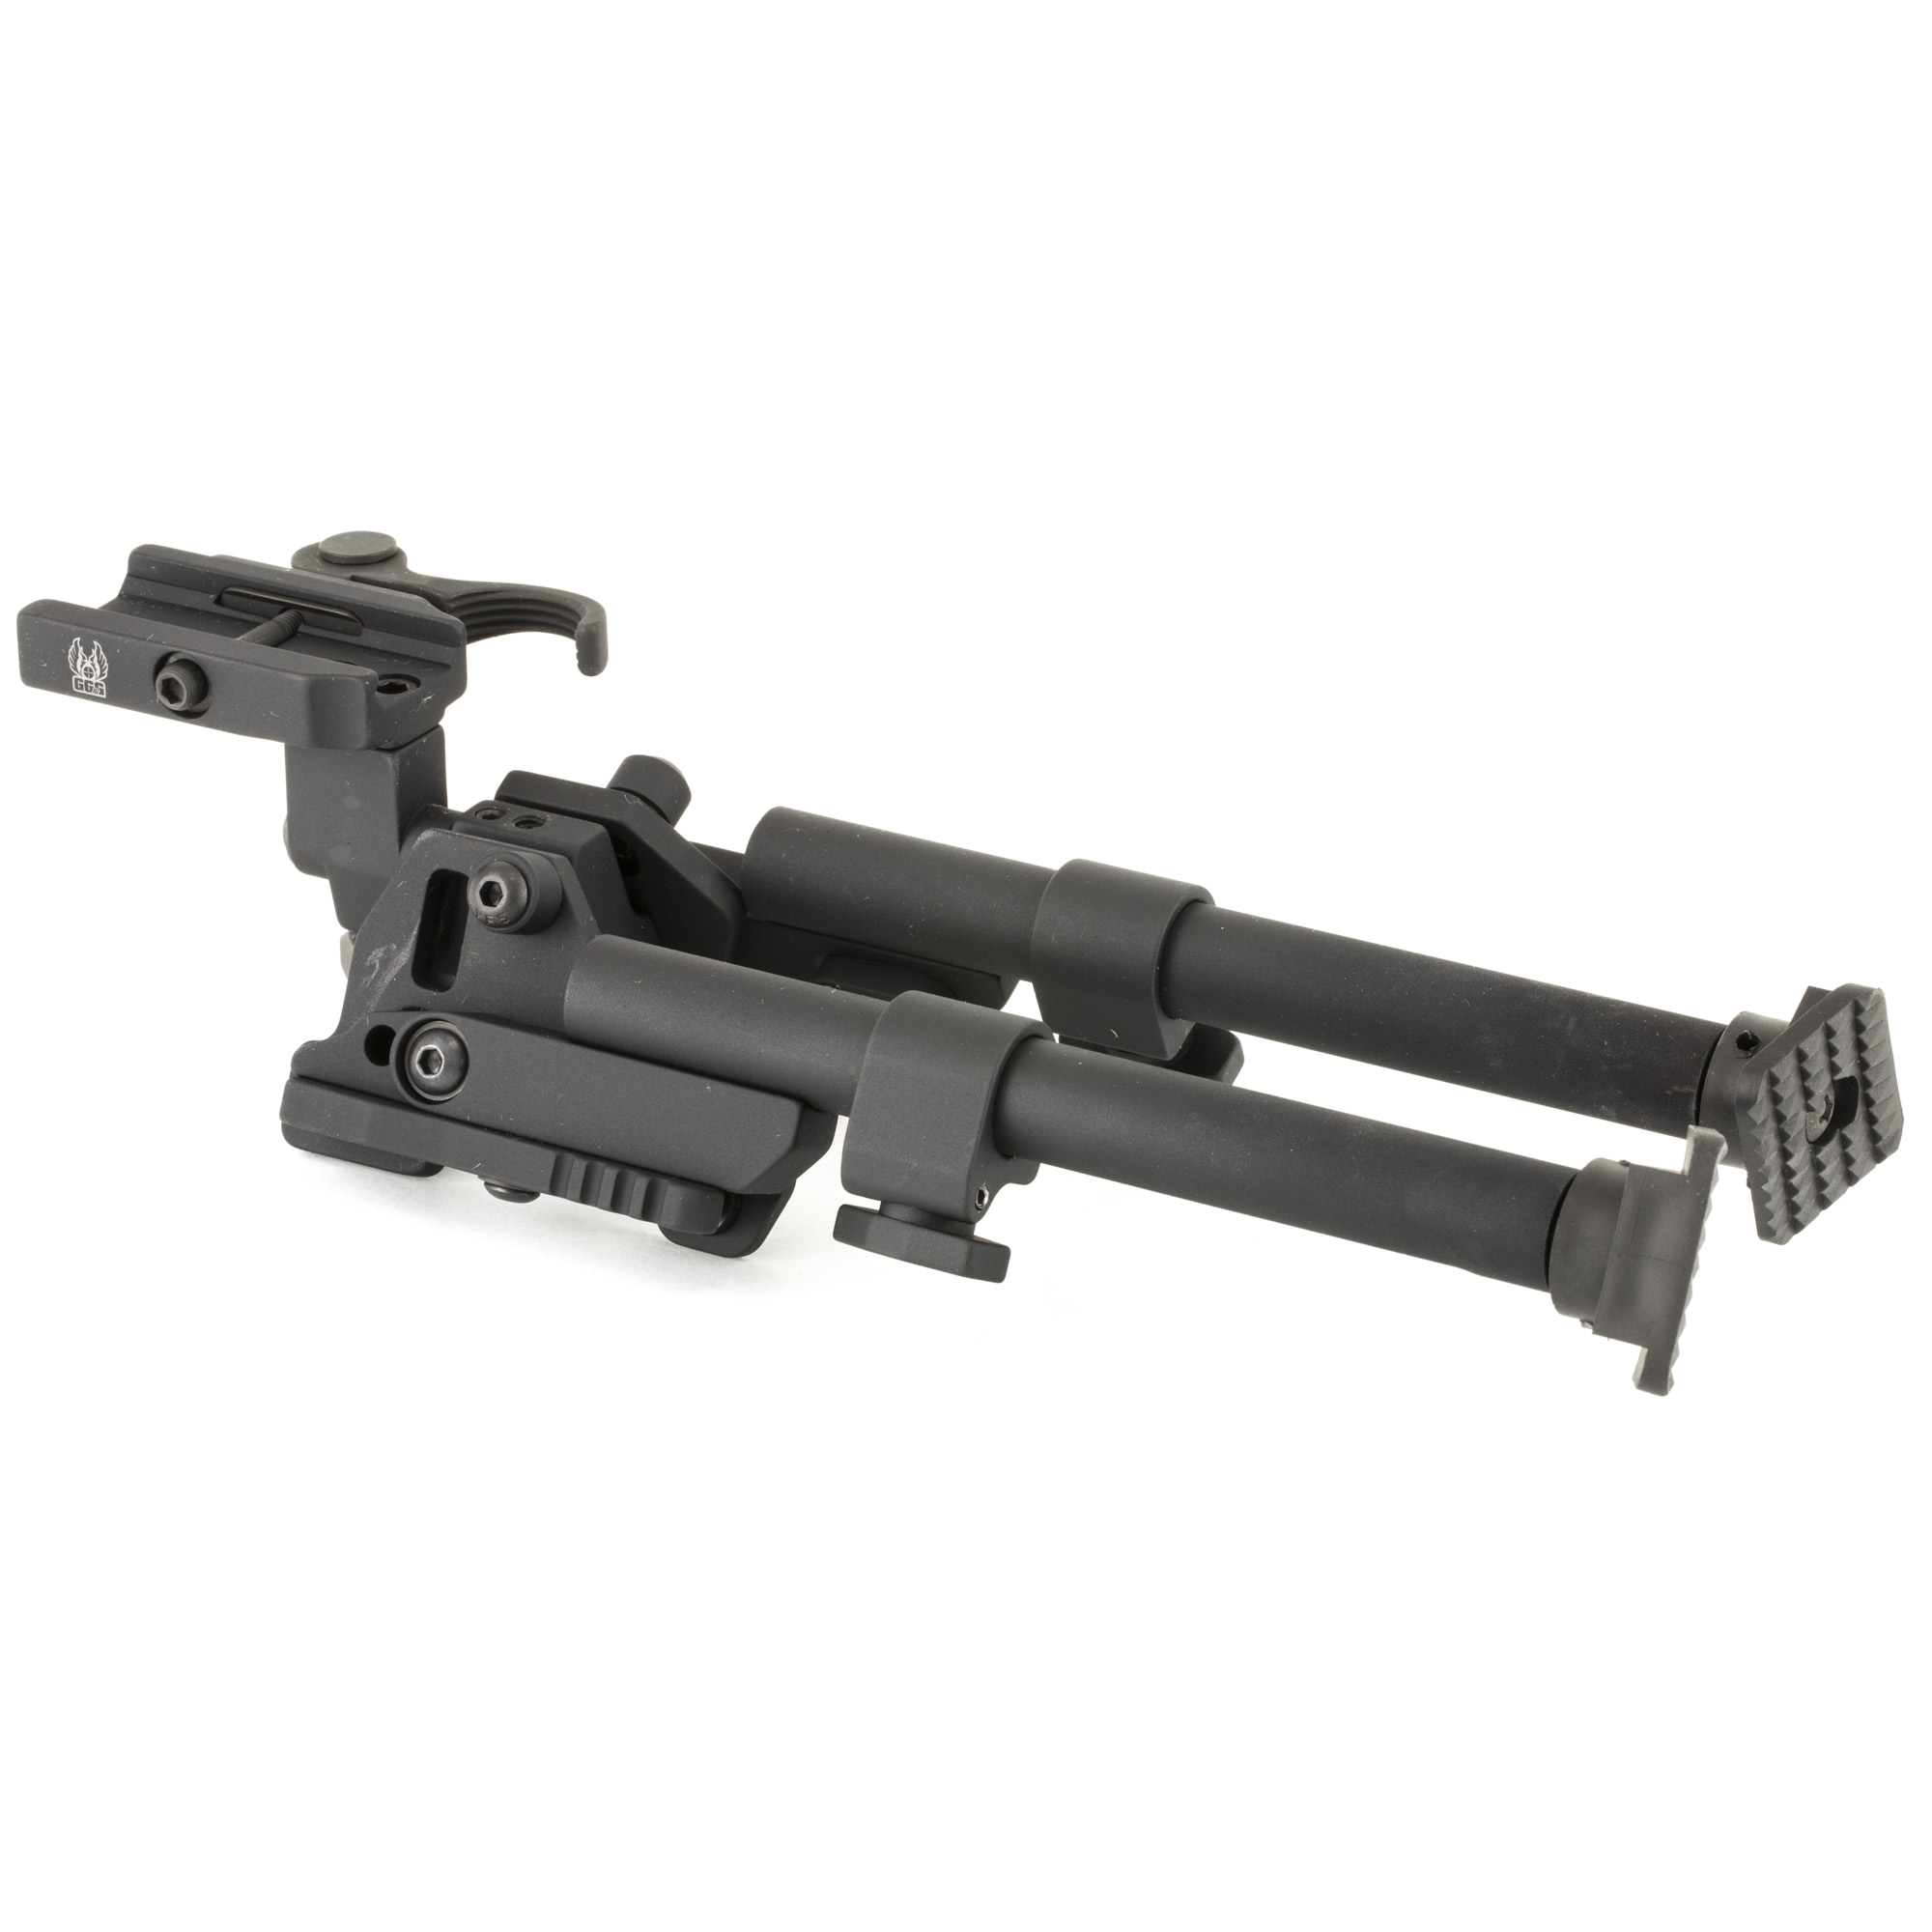 """GG&G's Quick Detach Heavy Duty XDS Bipod with the ability to cant"""" offers a greater range than previous versions. In addition to a much stronger pivot mechanism"""" the design affords 25 degrees of cant in either direction of center. Not only does this increase better rough terrain adjustability"""" but this pivoting capability allows the deployed bipod leg to be used as a vertical foregrip if required for rapid transition. Fits standard 1913 Picatinny Rail."""